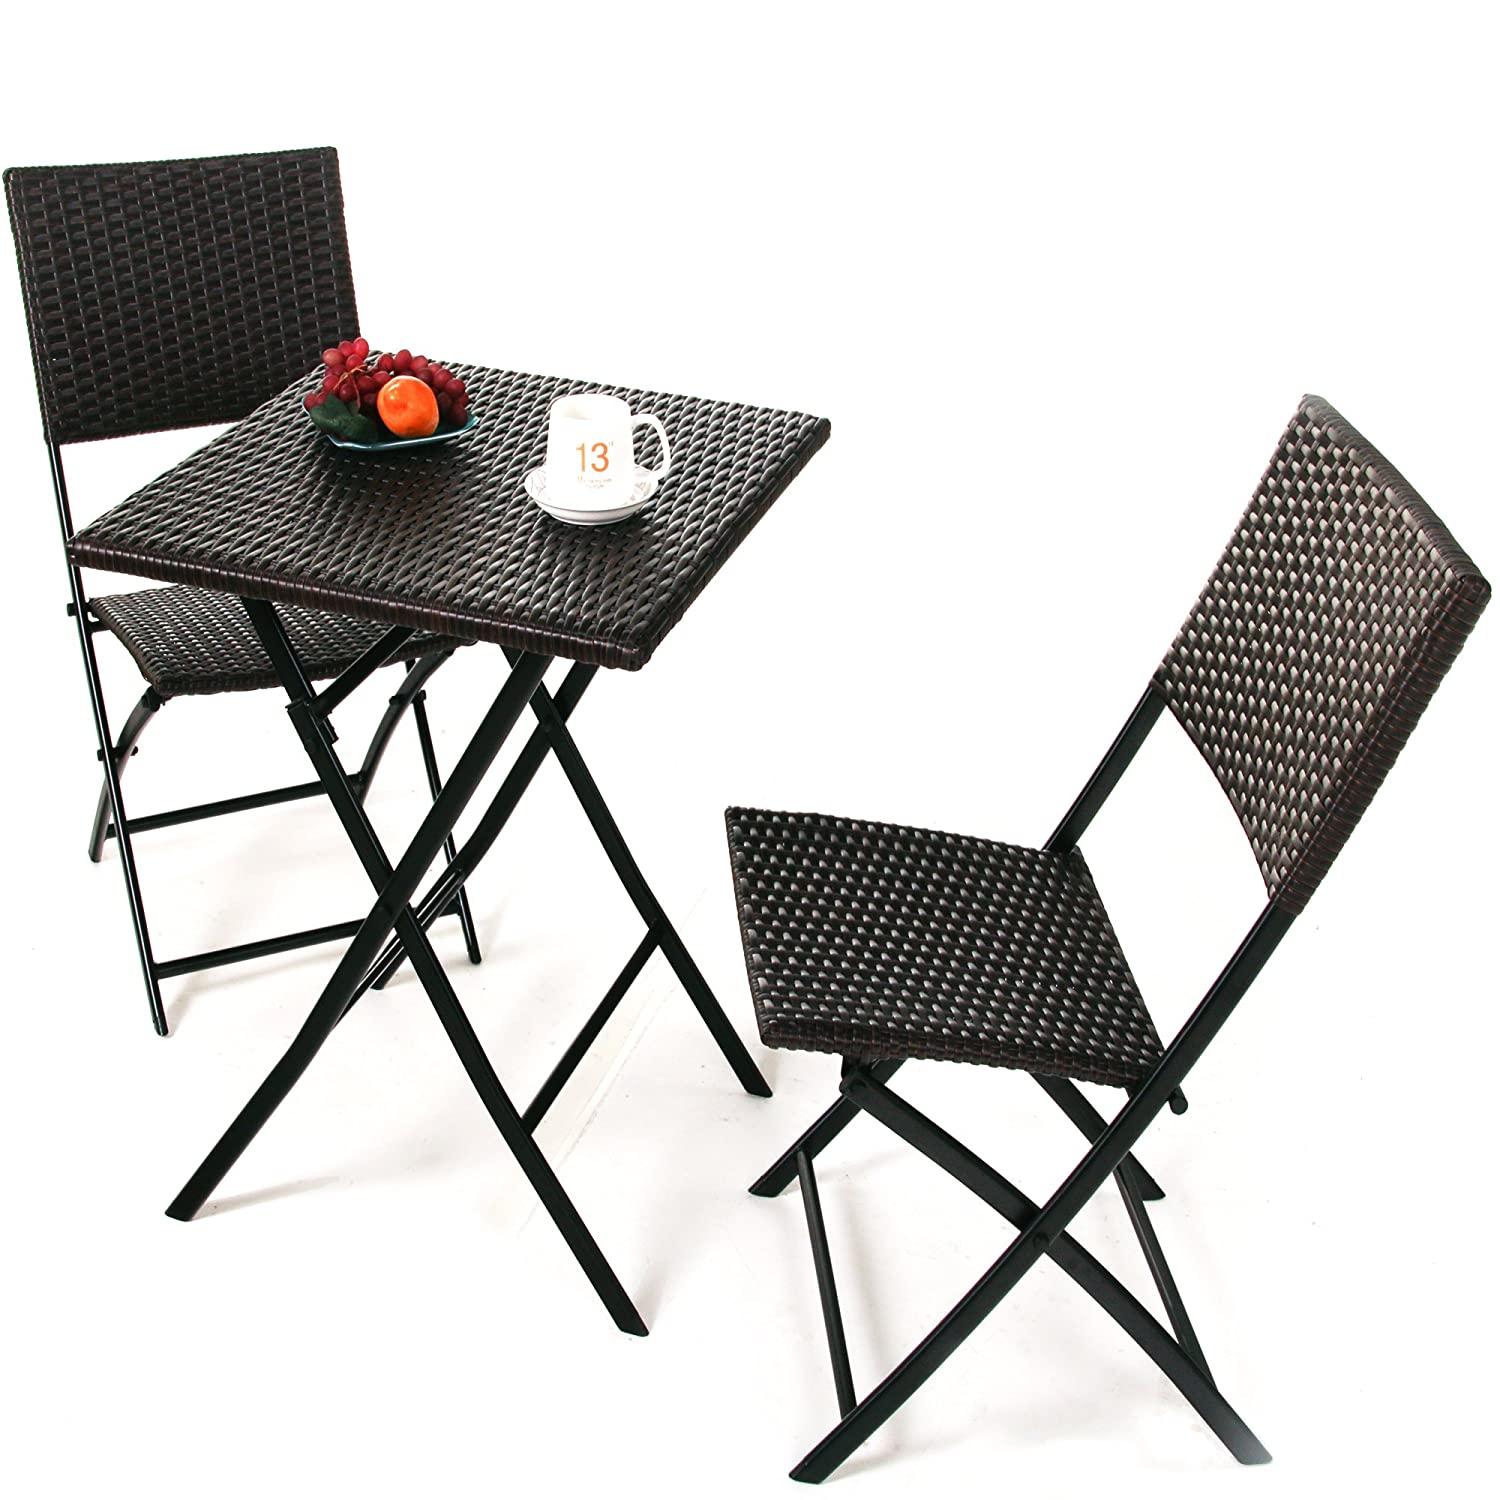 amazoncom grand patio parma rattan patio bistro set weather resistant outdoor furniture sets with rust proof steel frames 3 piece bistro set of foldable - Garden Furniture 3 Piece